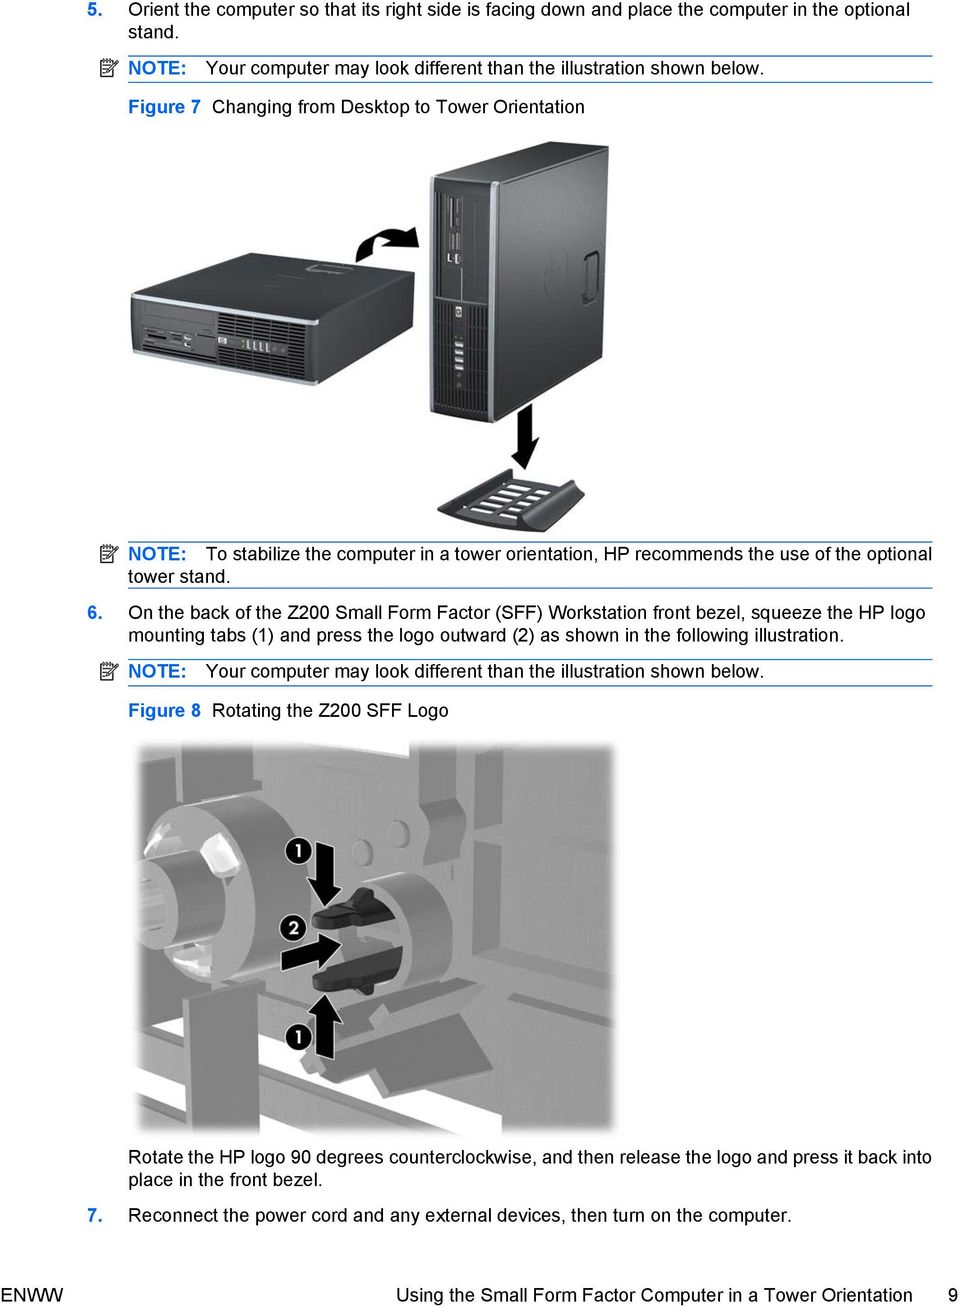 On the back of the Z200 Small Form Factor (SFF) Workstation front bezel, squeeze the HP logo mounting tabs (1) and press the logo outward (2) as shown in the following illustration.